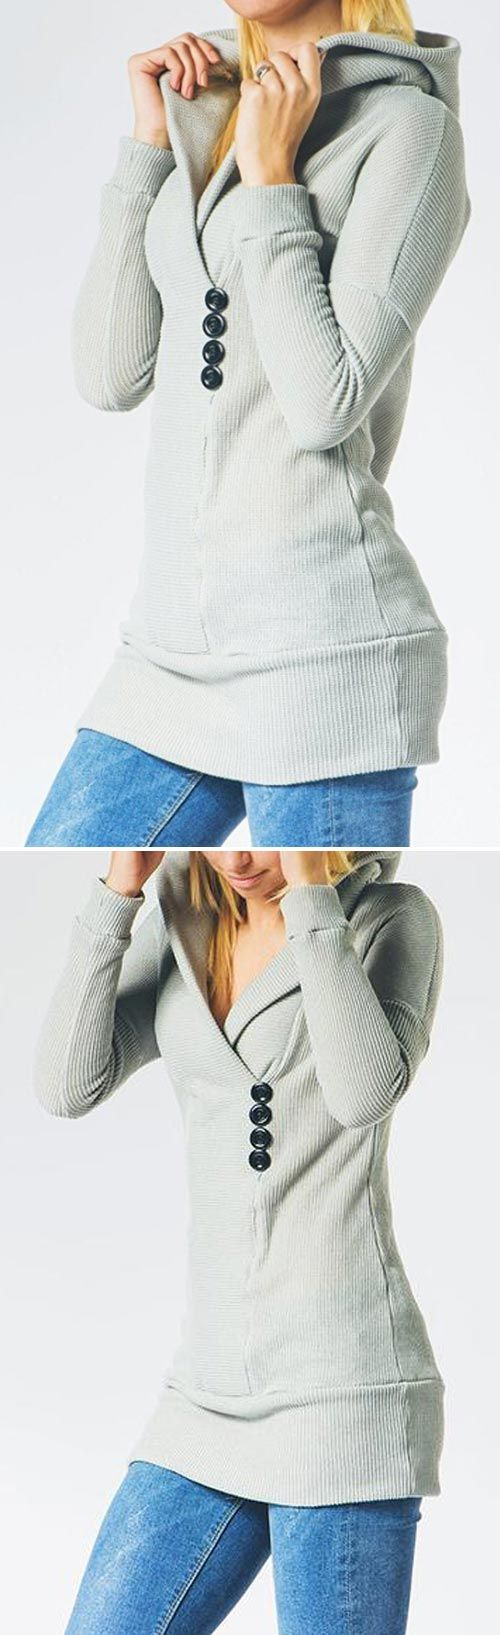 Hot Sale, Only $21.99! Free Shipping Now! Happily grey makes casual chic again…